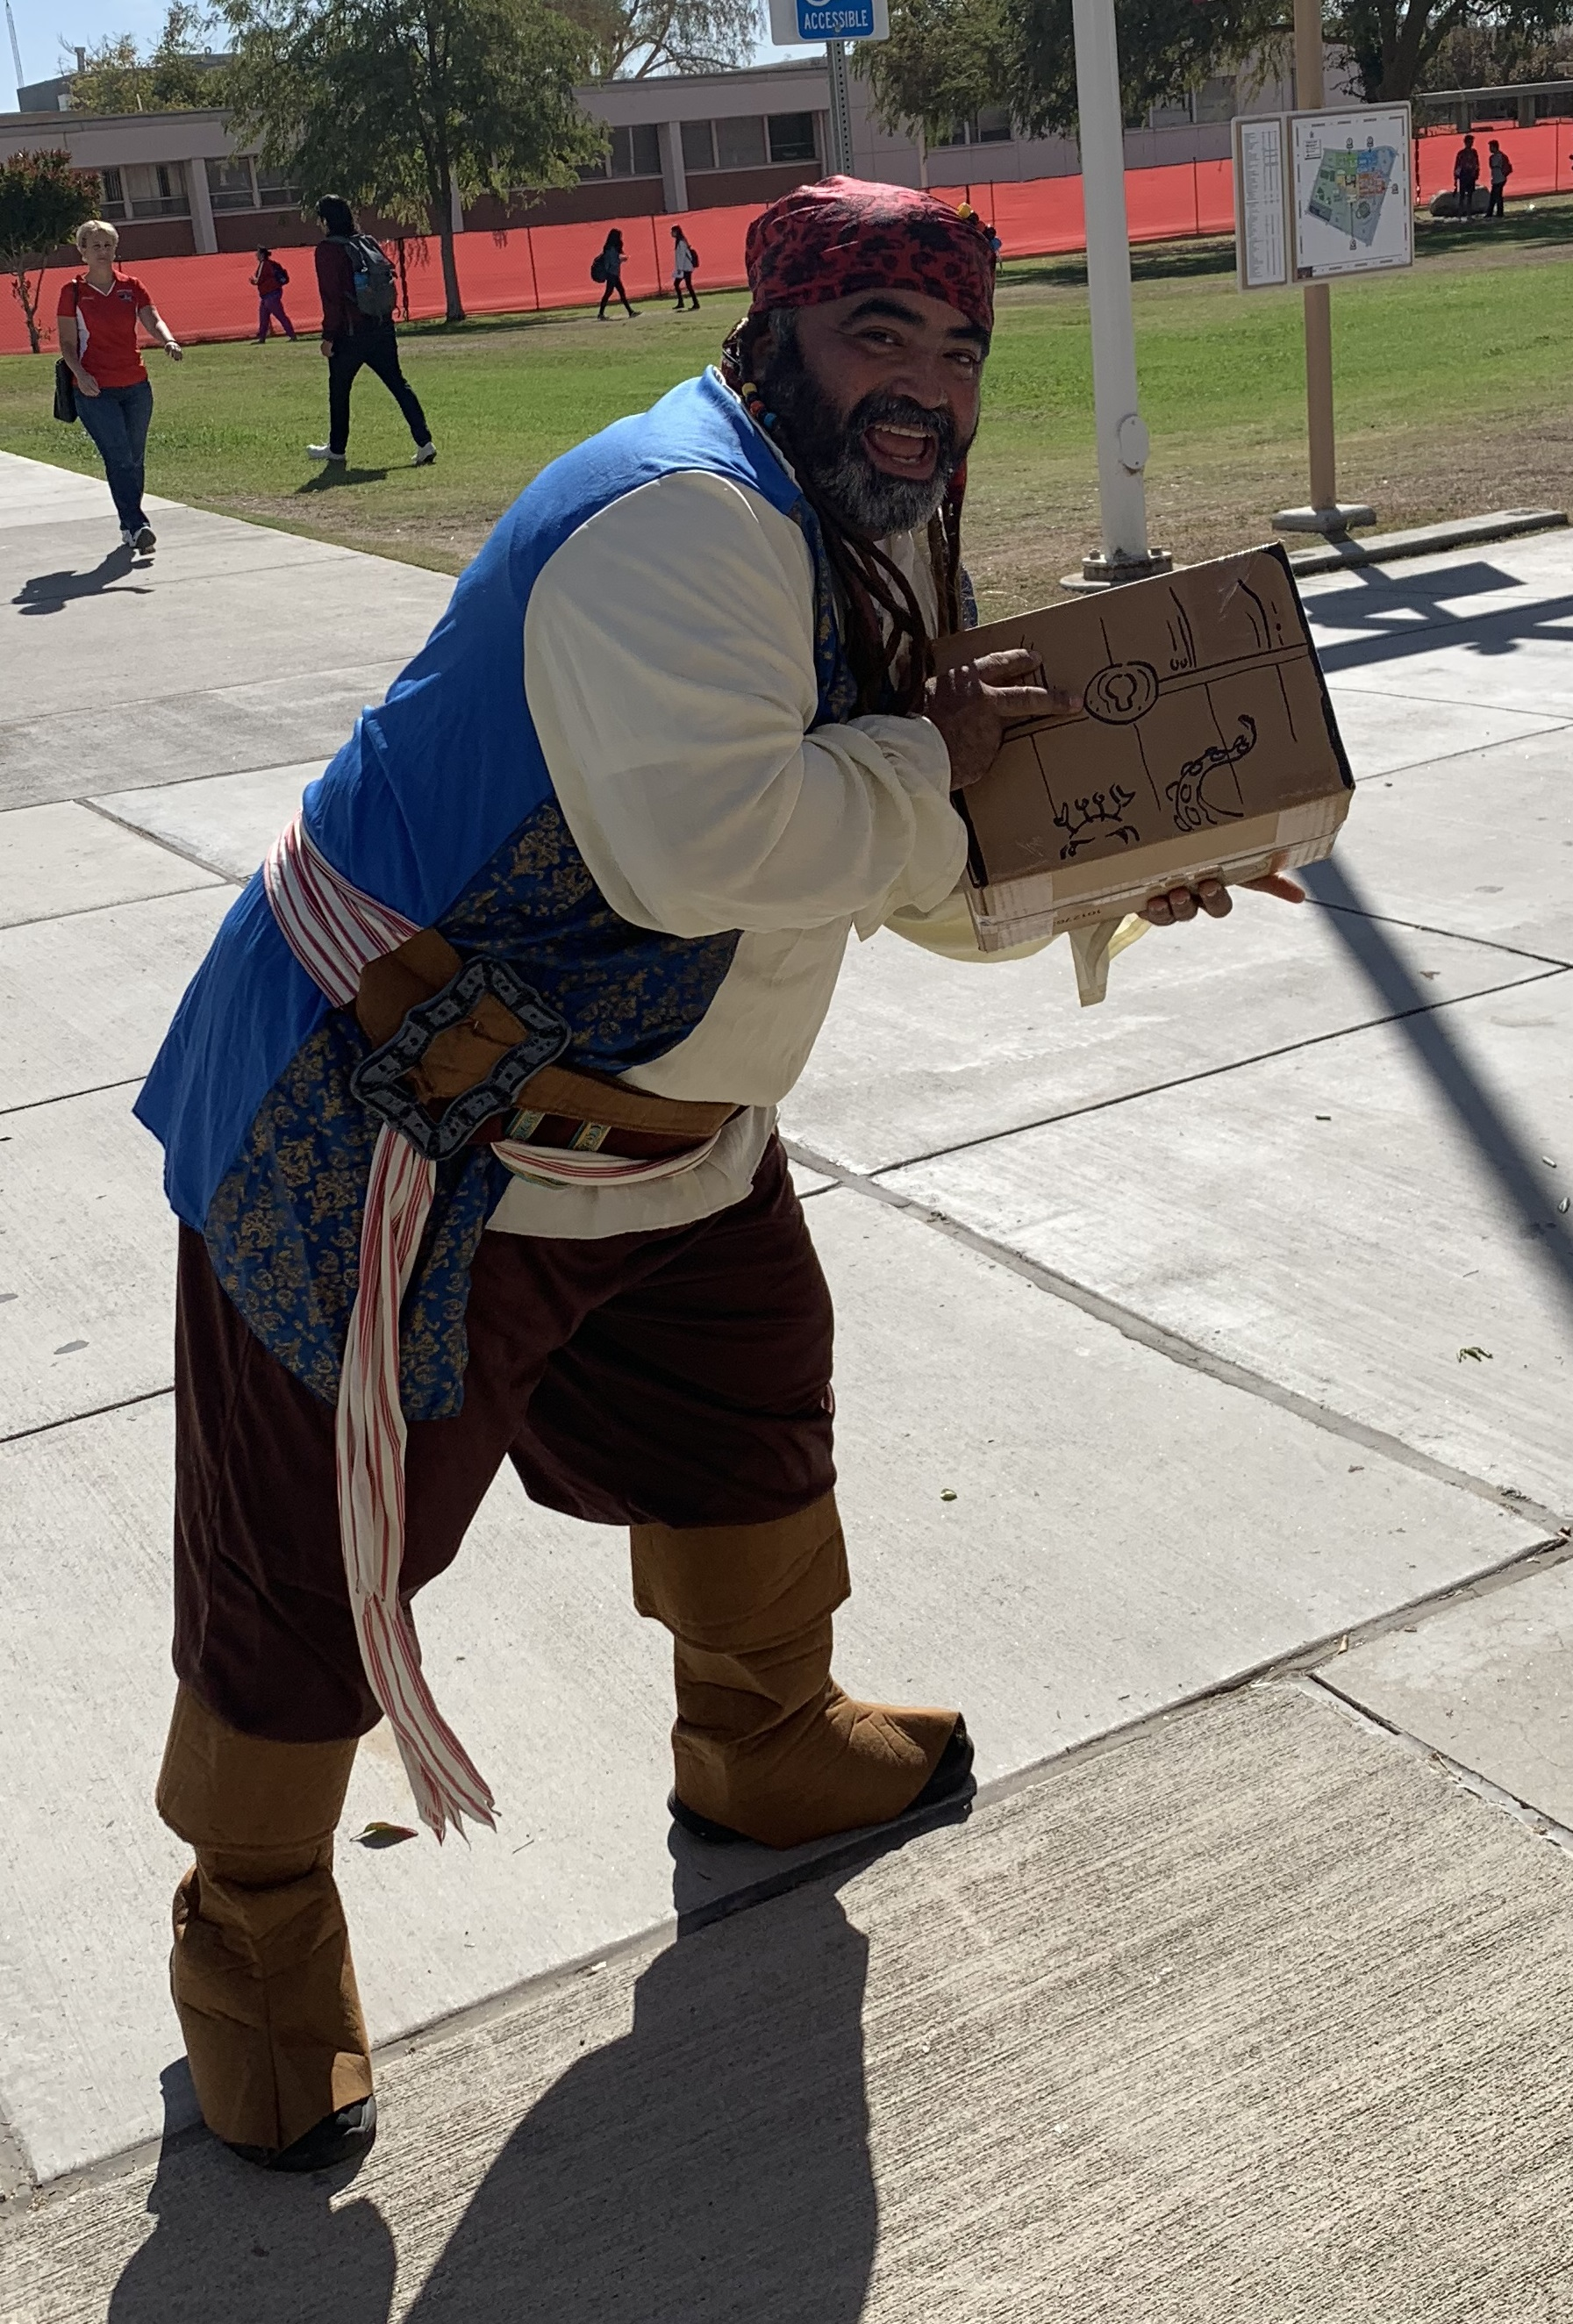 pirate outfit with box that looks like treasure chest